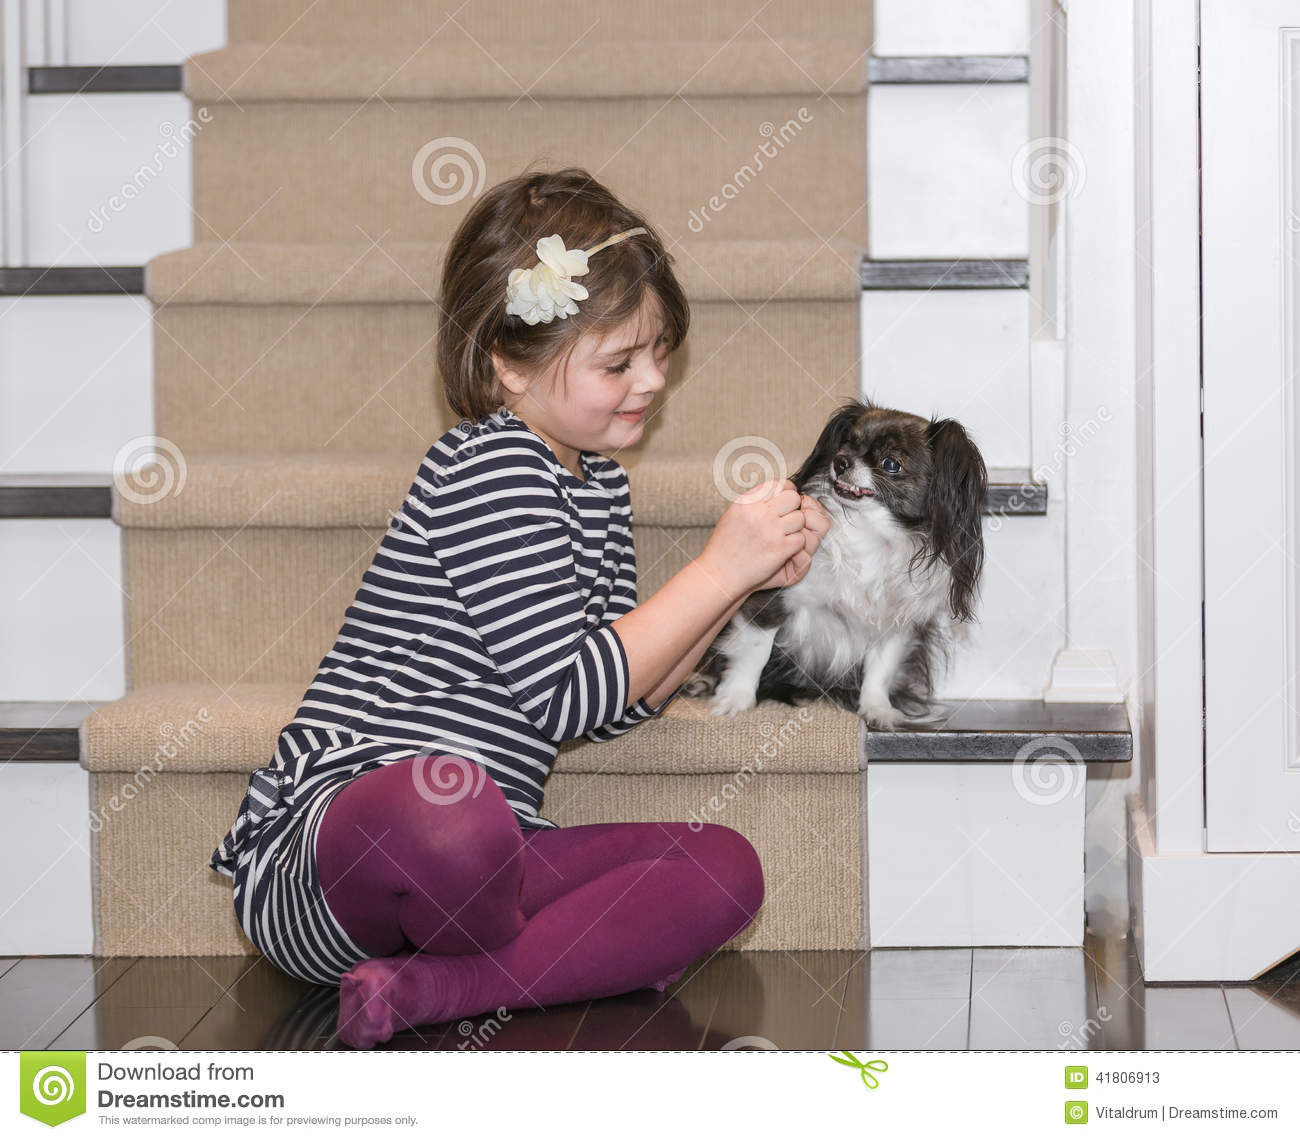 A child play with a dog inside the house stock image for Dog home boarding near me